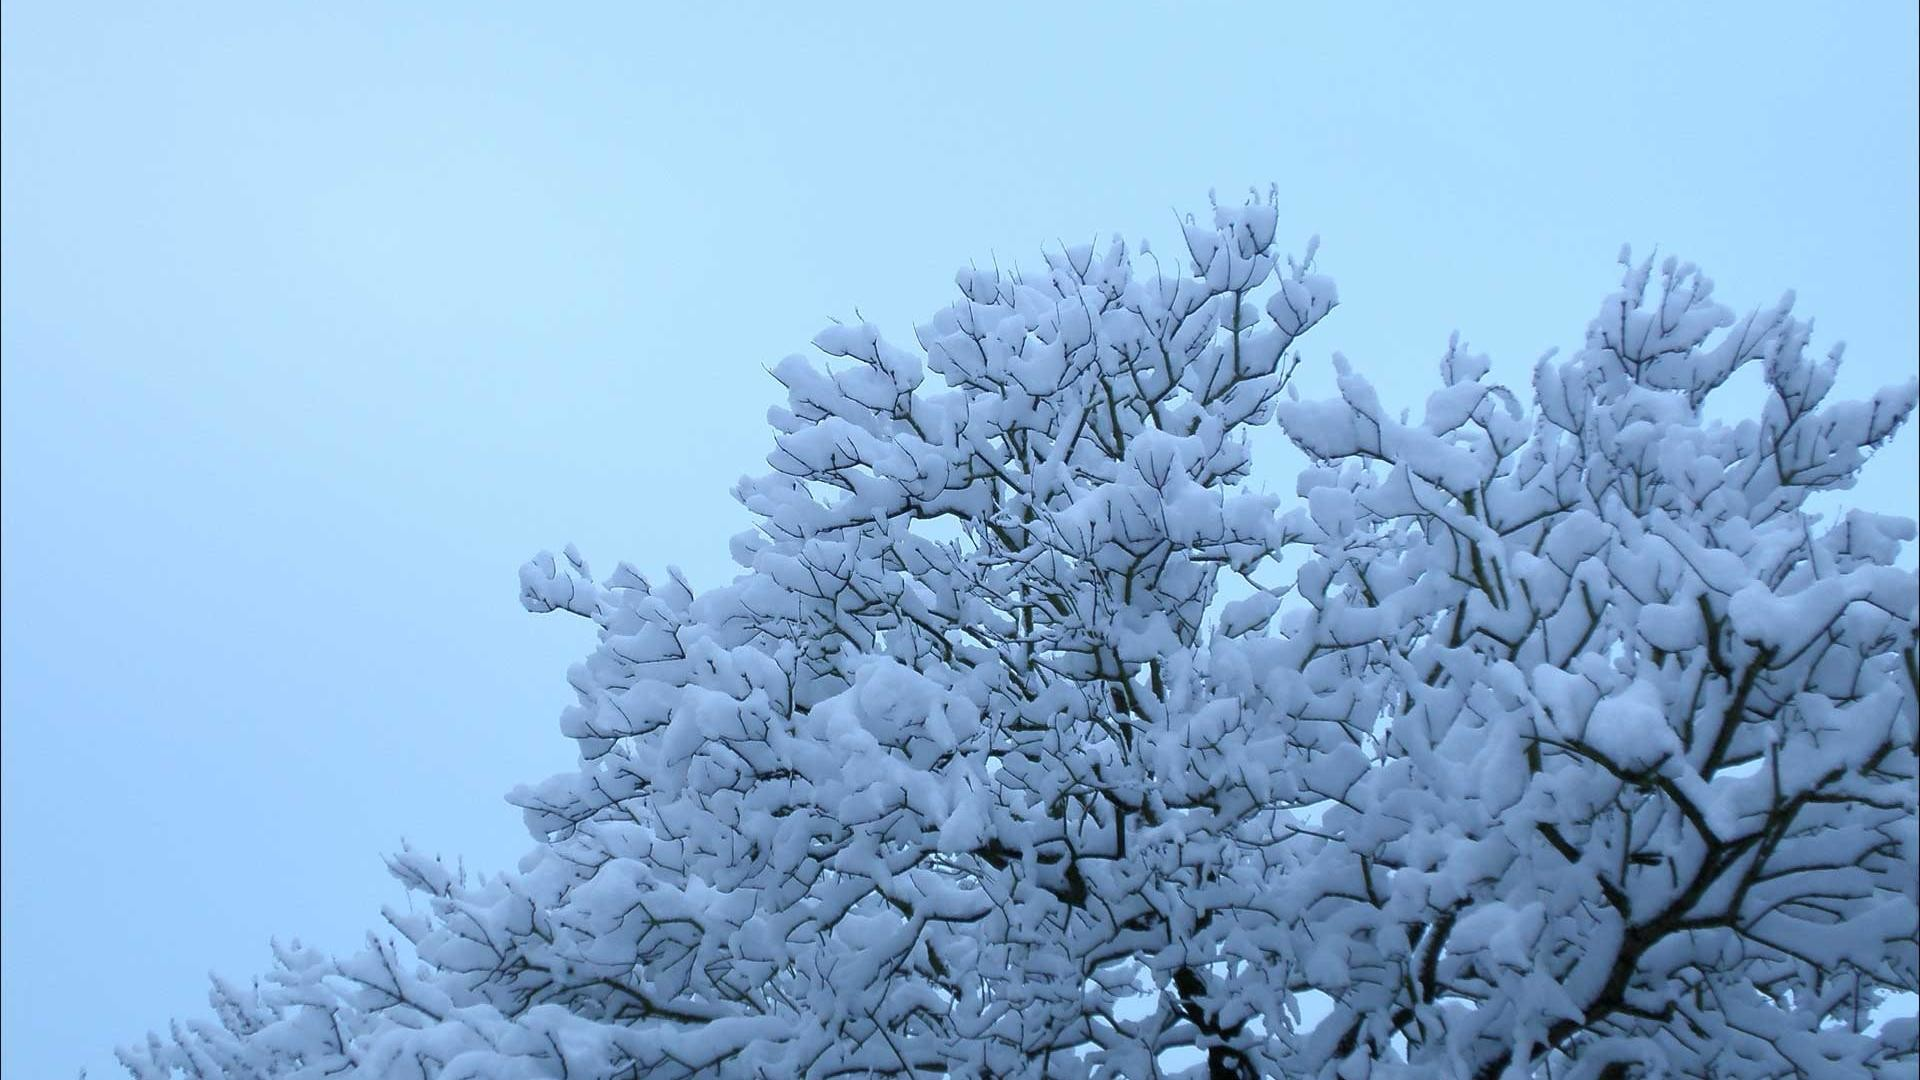 Cute tree full of snow in Winter backgrounds wide  wallpapers:1280×800,1440×900,